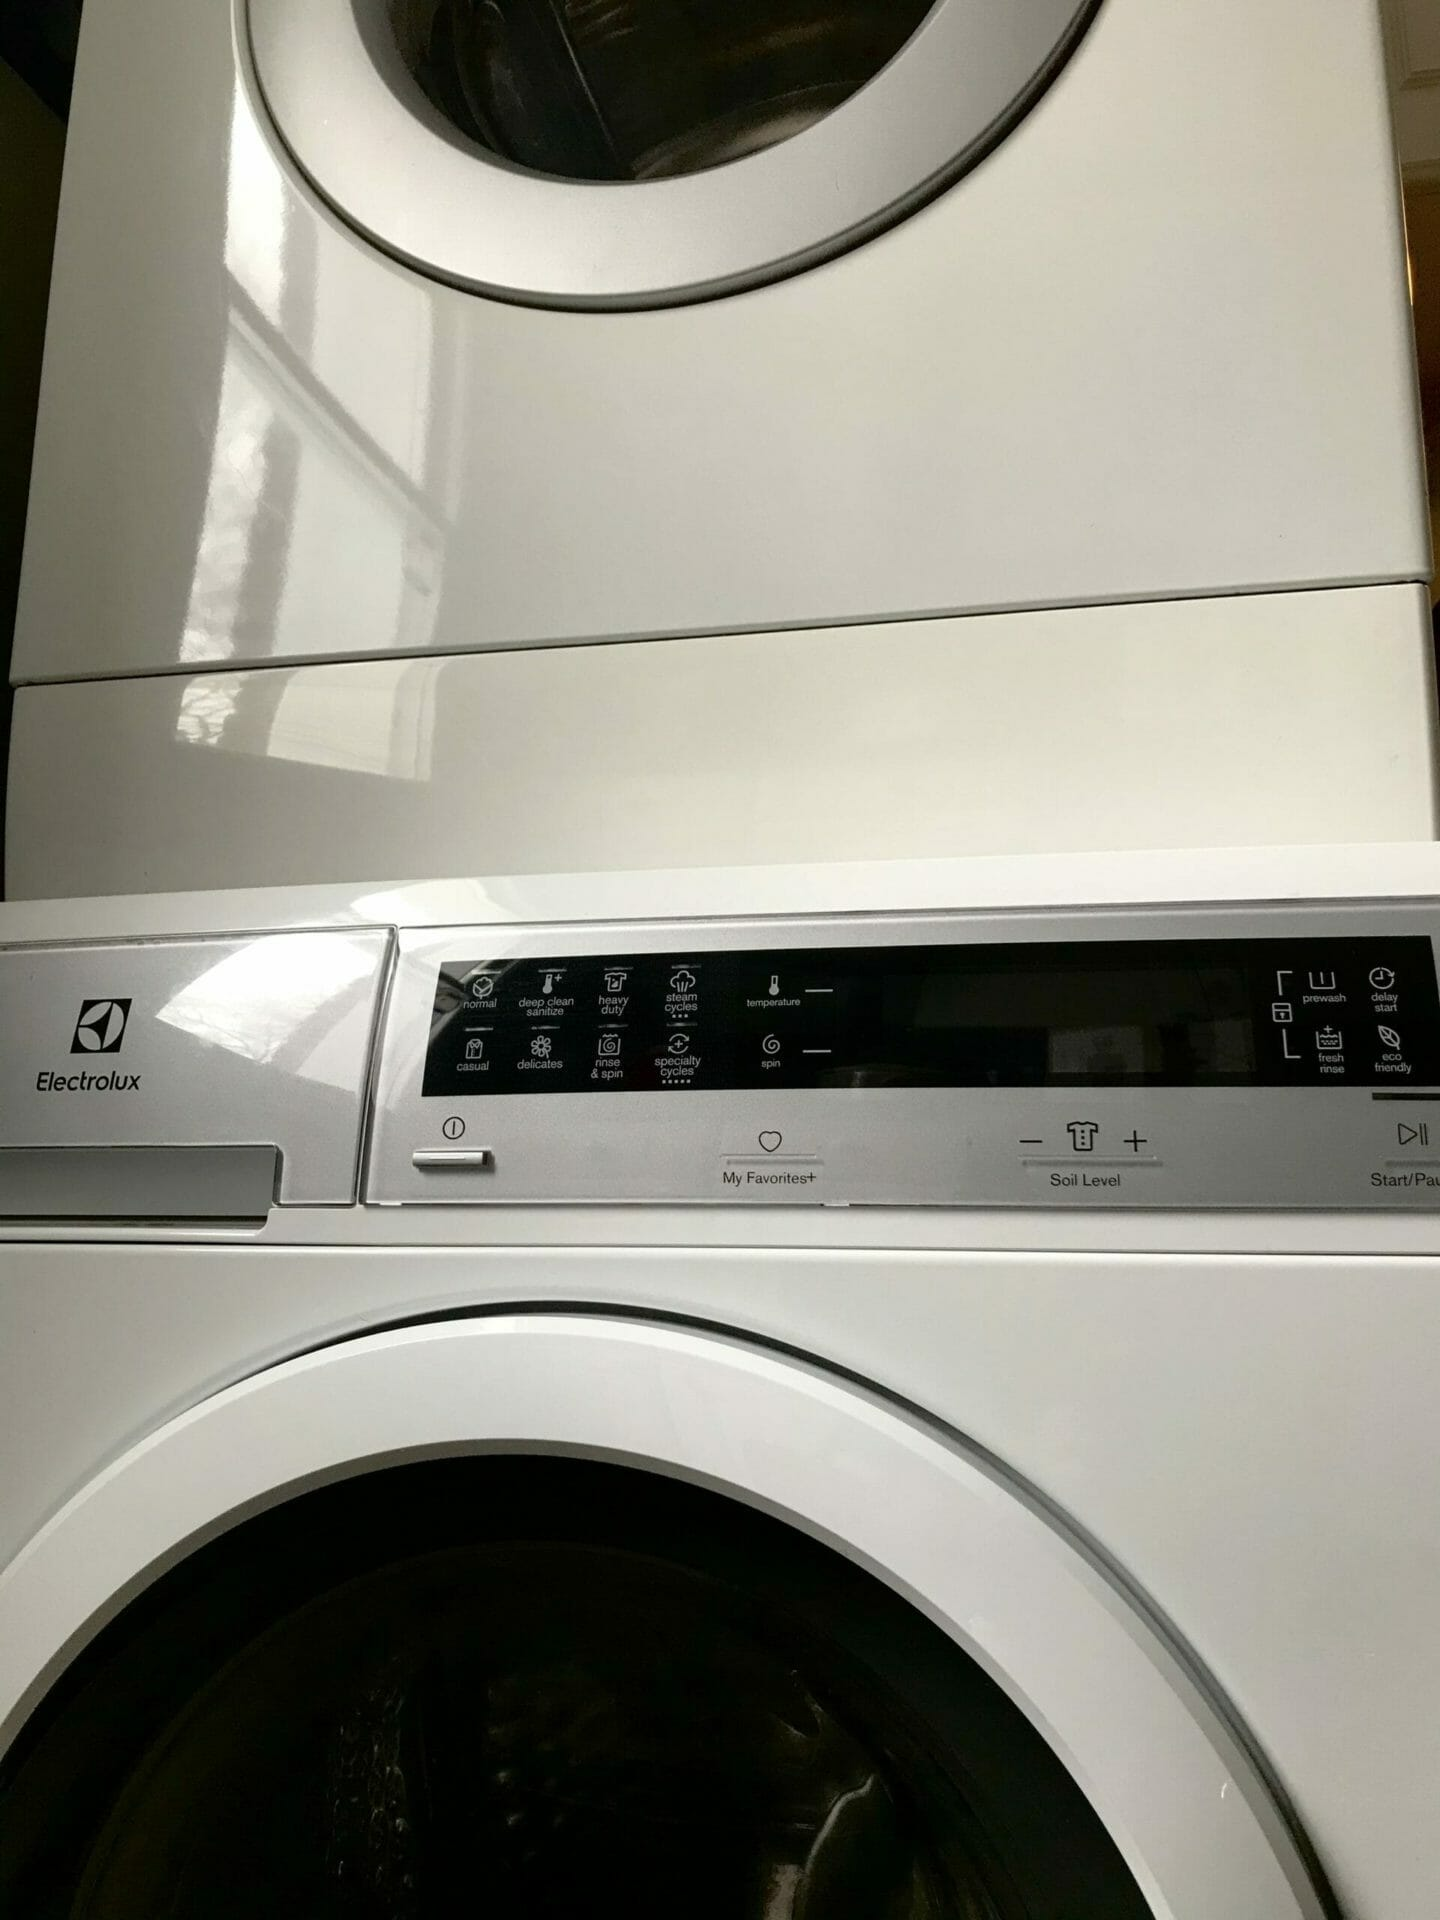 Washer and dryer installation cost